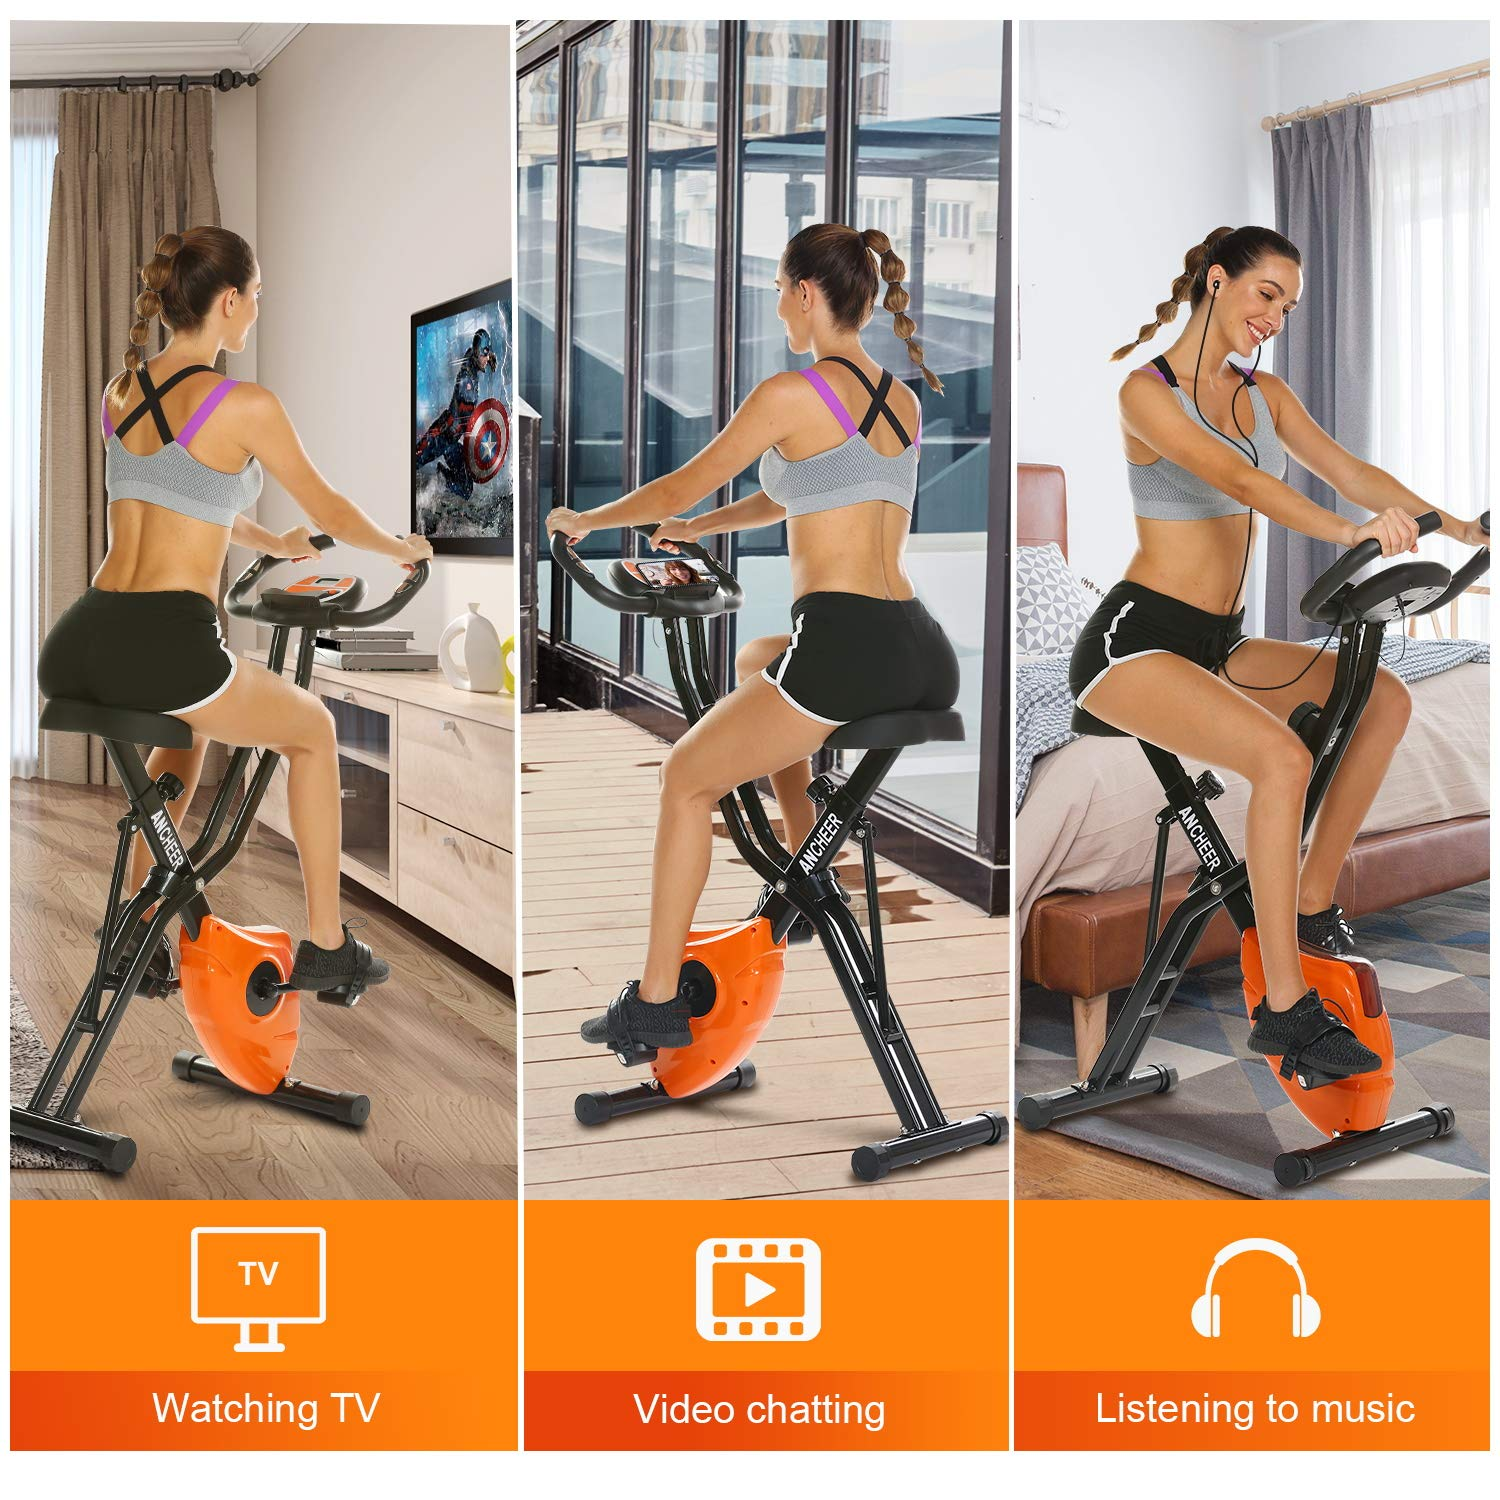 ANCHEER Folding Magnetic Exercise Bike, 10-Level Adjustable Stationary Bike - Tablet Stand & Large and Comfortable Seat by ANCHEER (Image #2)